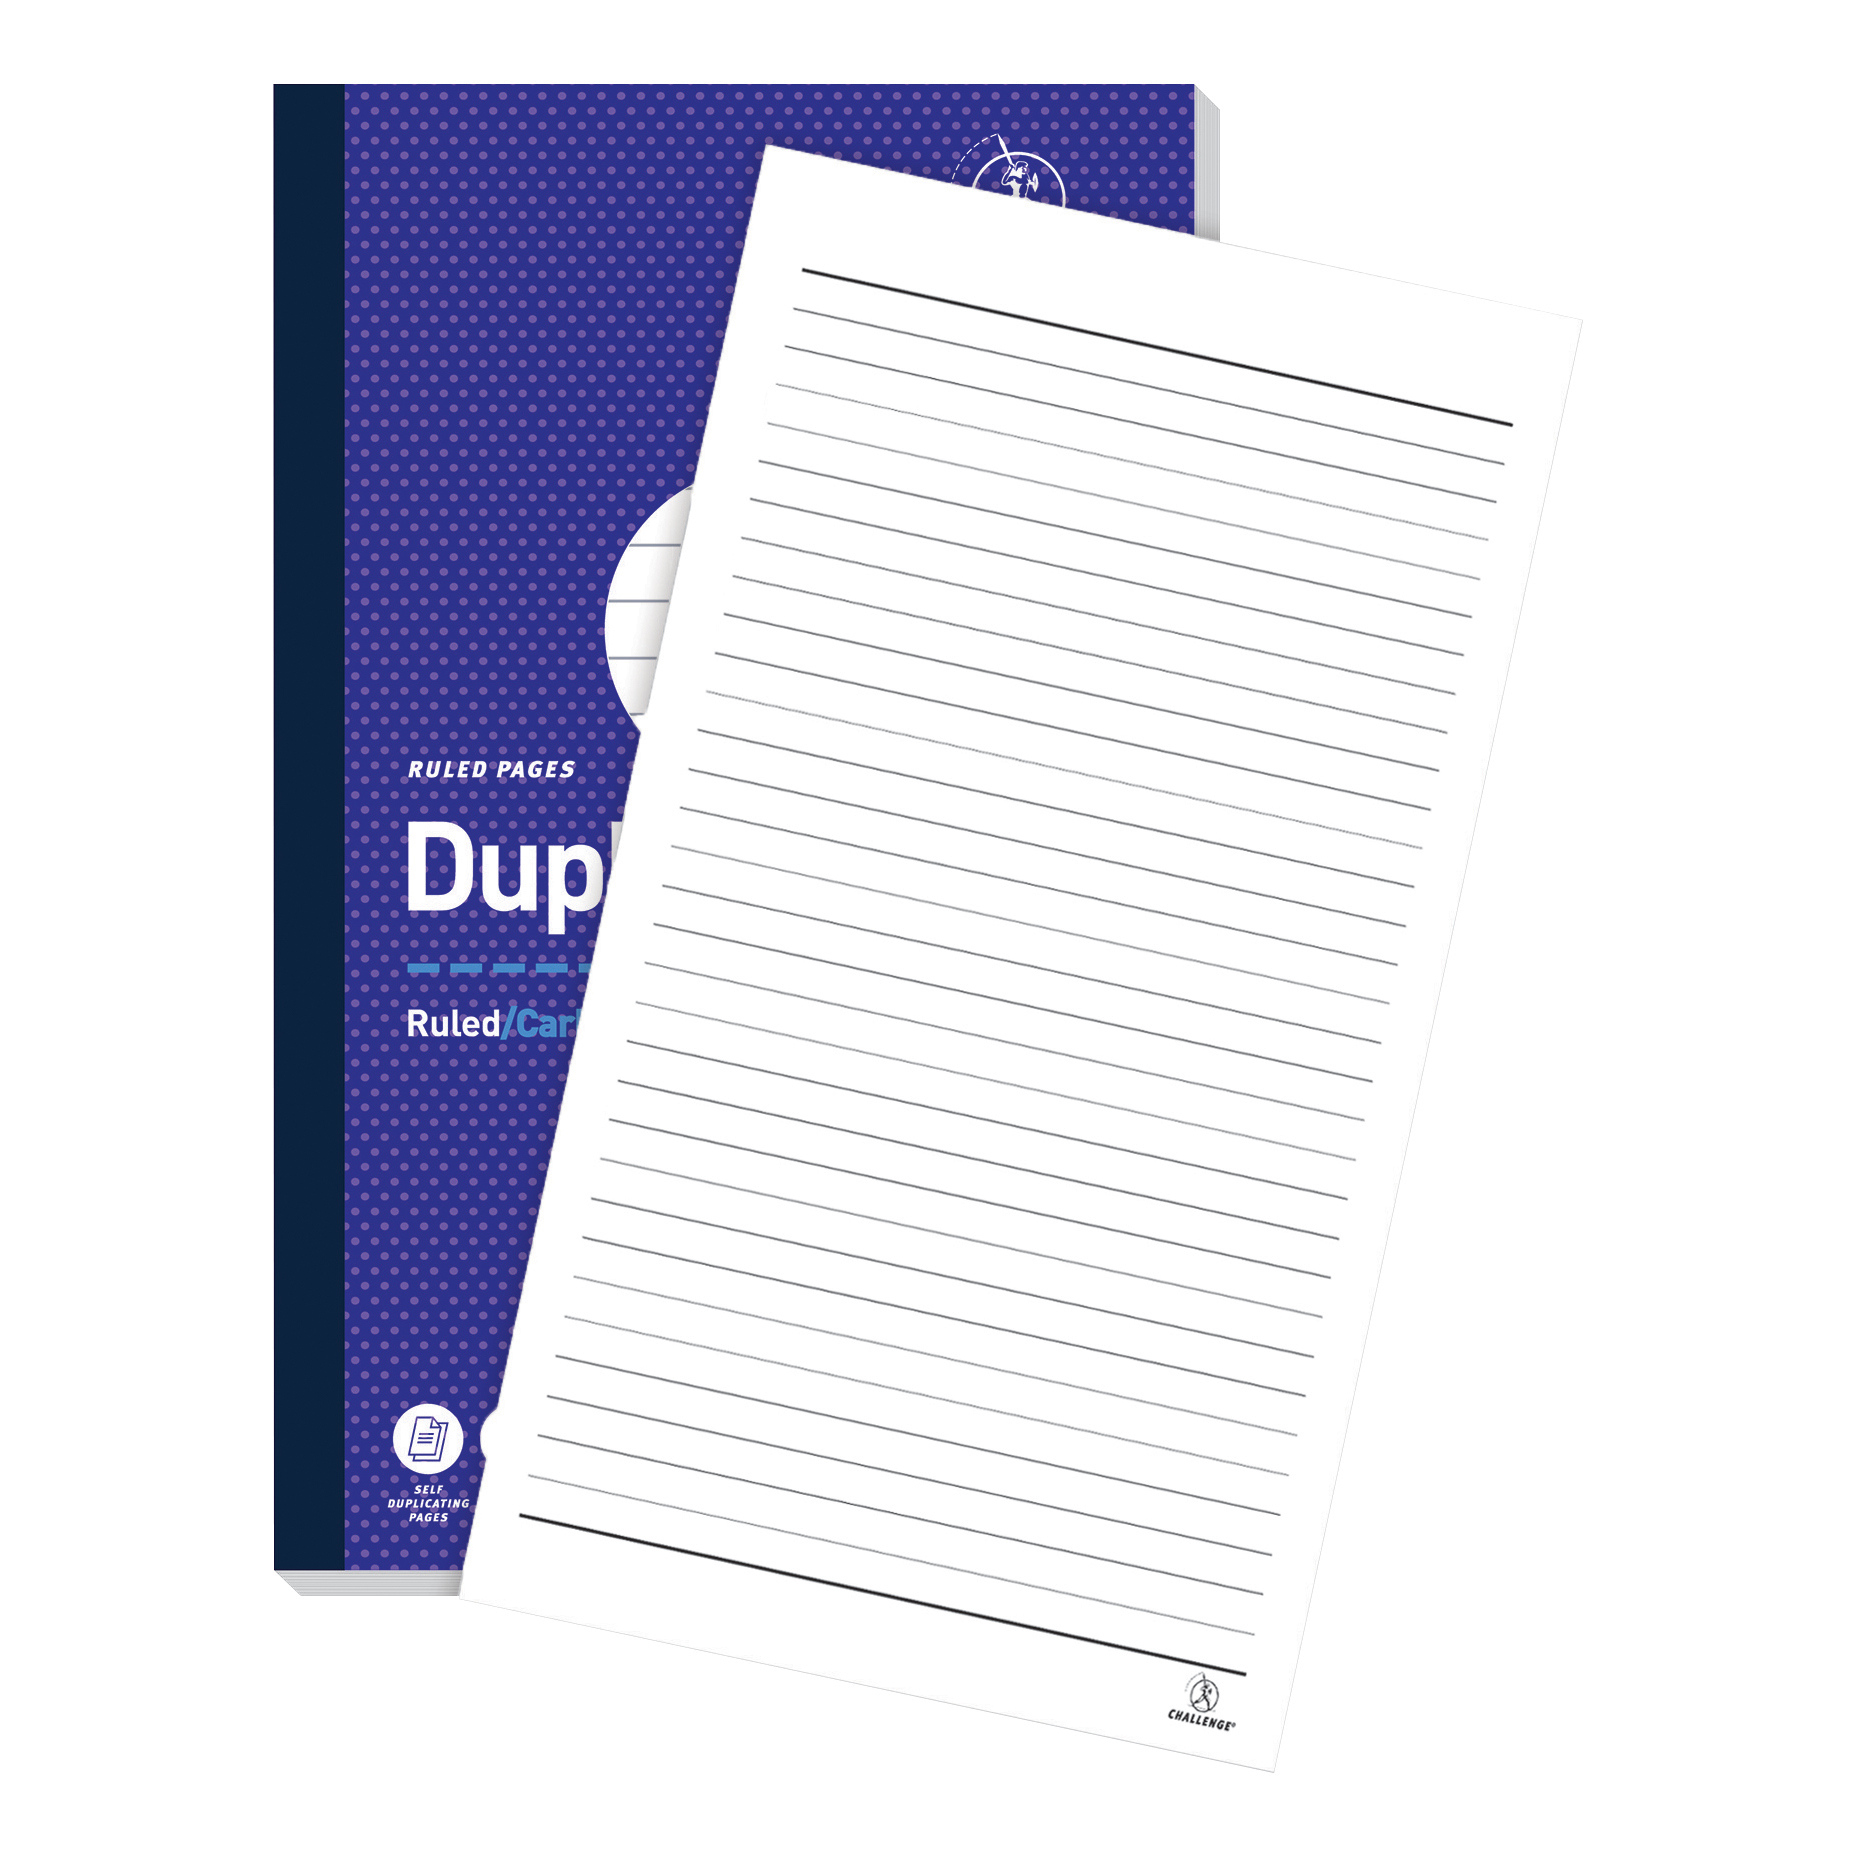 Duplicate Challenge Duplicate Book Carbonless Ruled 100 Sets 297x195mm Ref 100080527 Pack 3